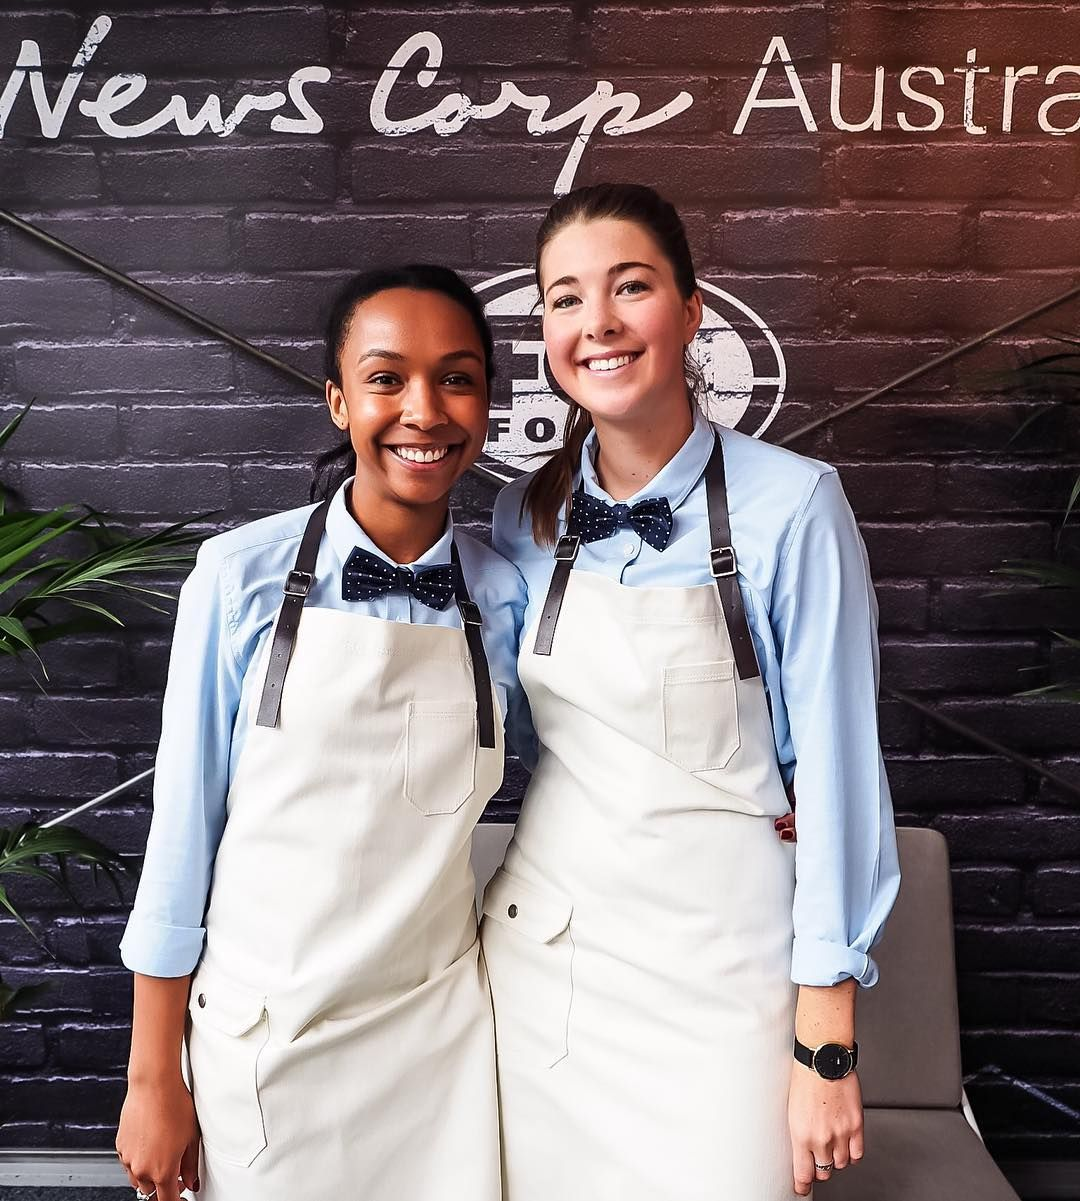 White apron melbourne - The Big Group Melbourne Wearing Cargo Crew